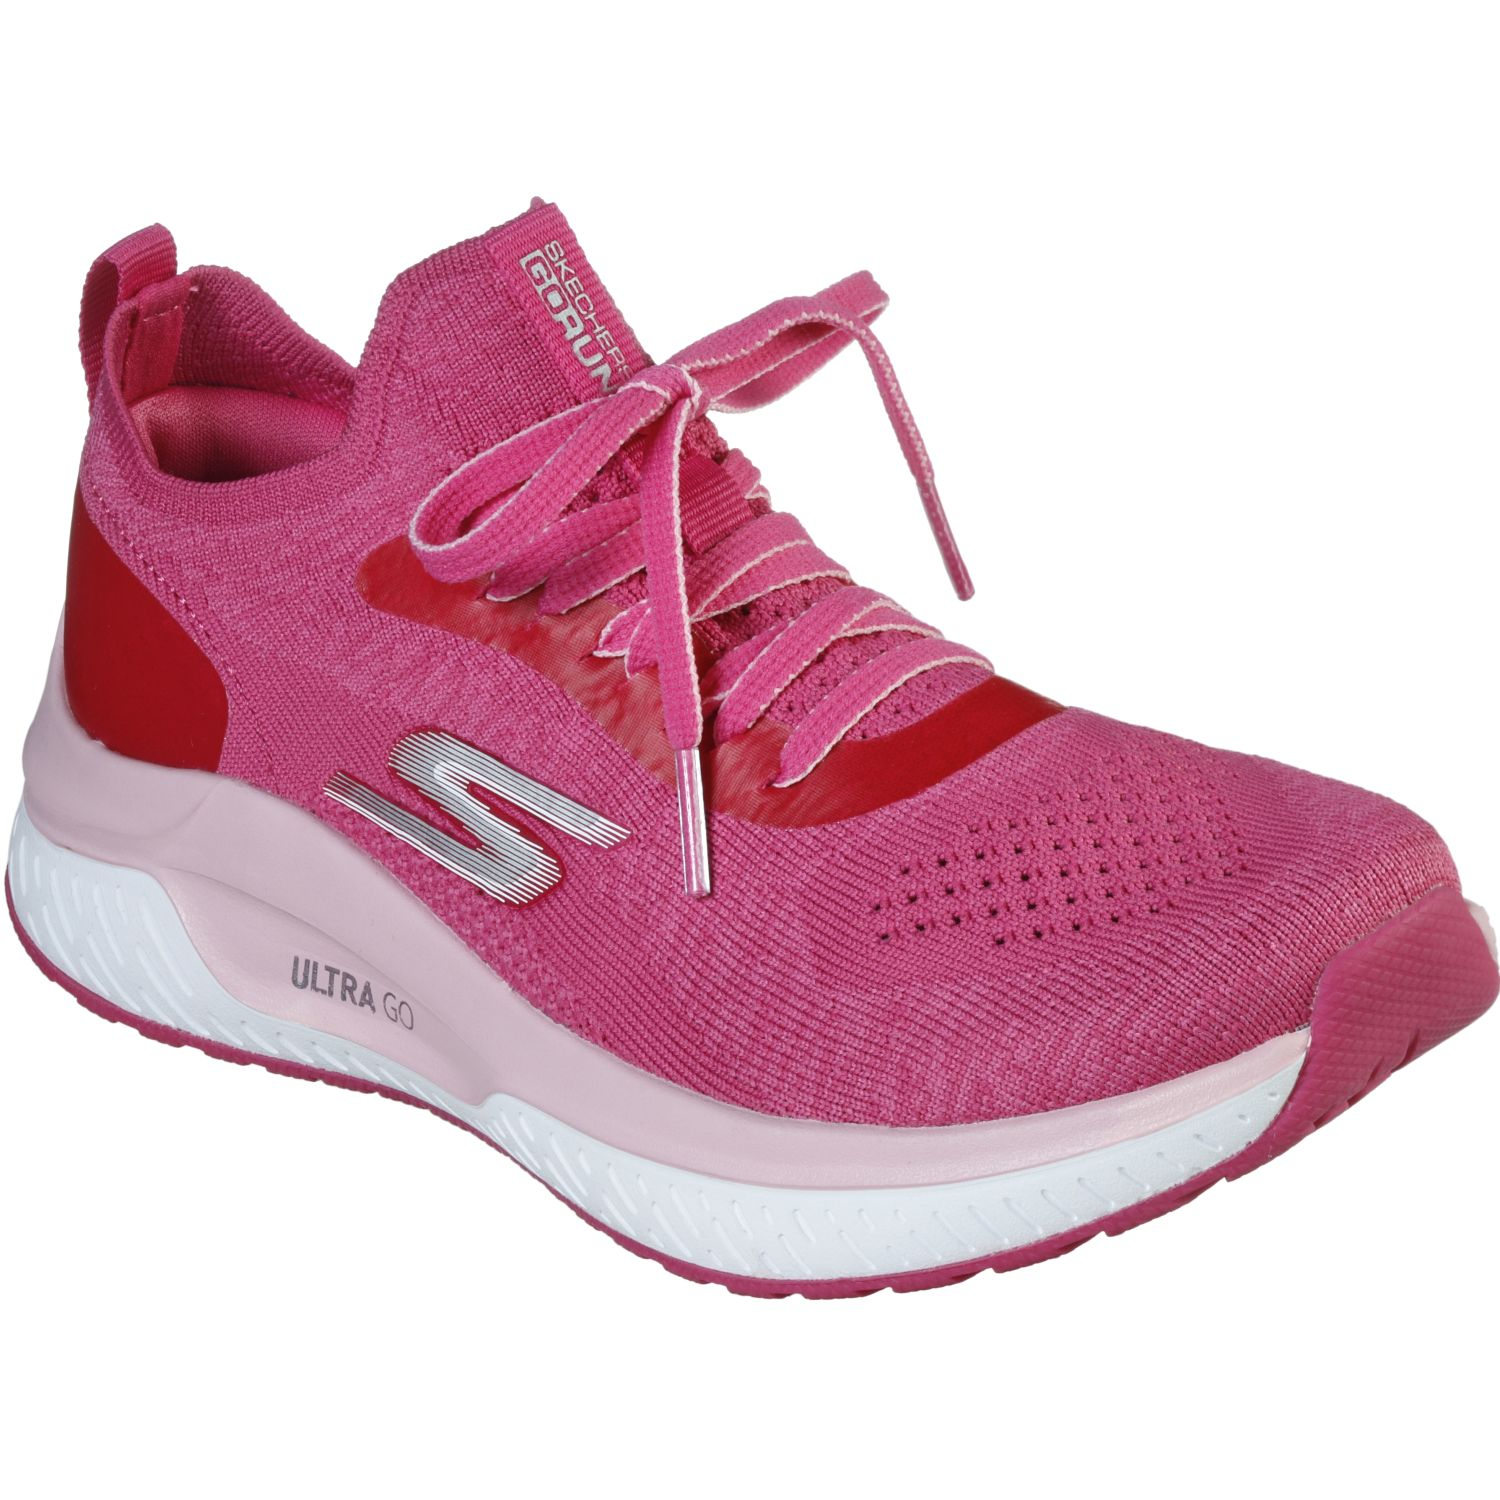 Skechers steady Rosado Running en pista